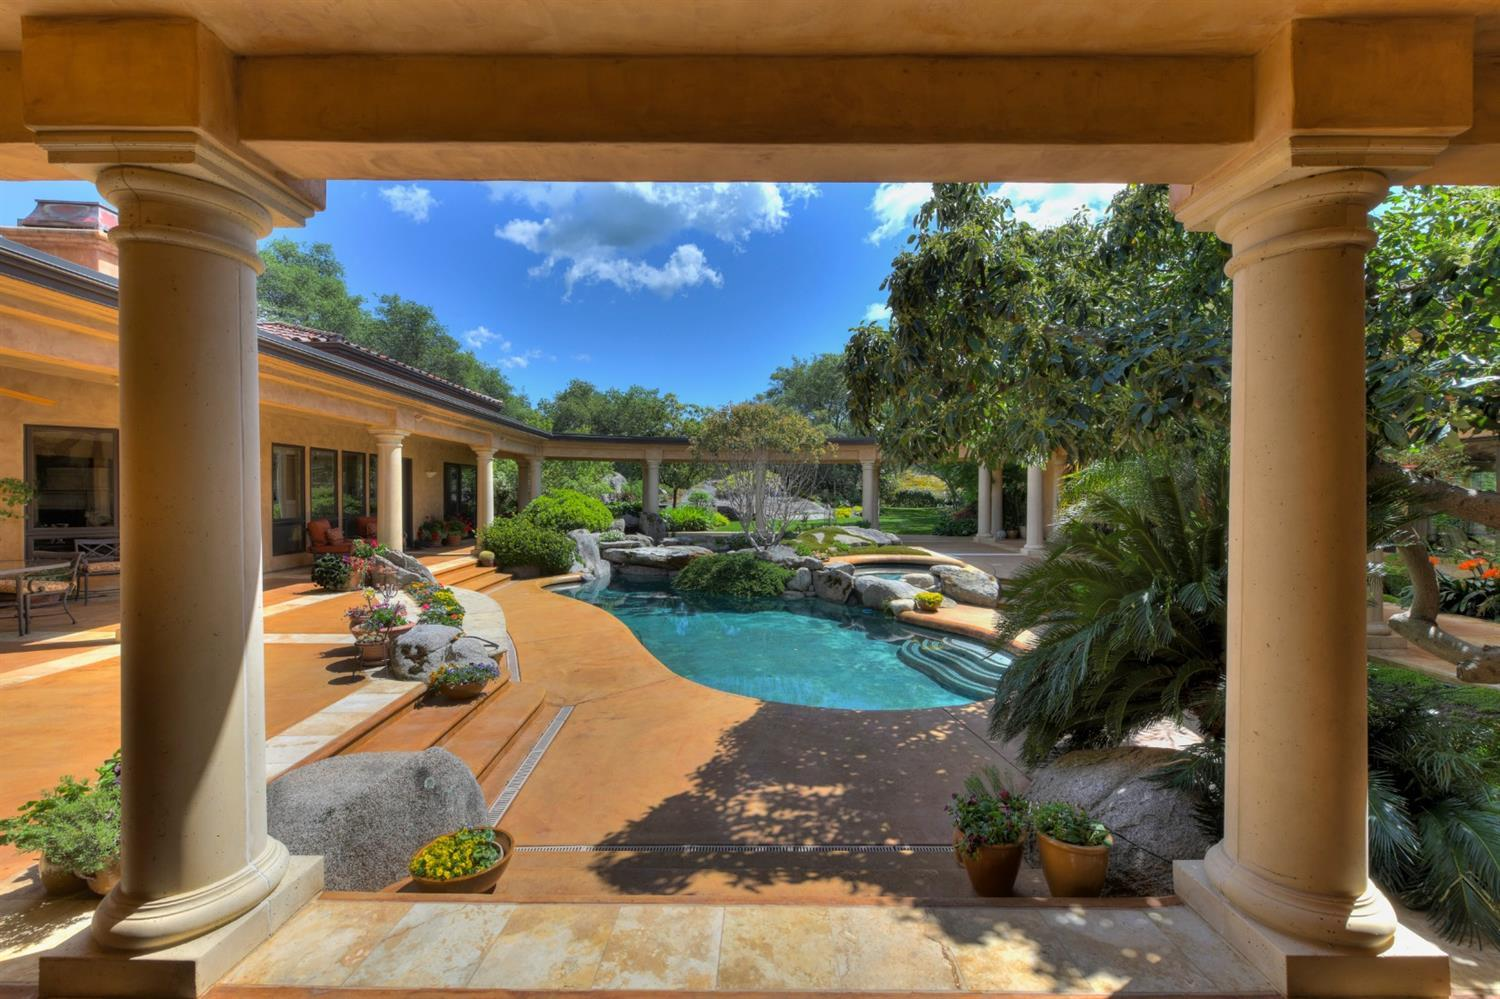 Local Los Lagos, CA Real Estate Listings and Homes for Sale | BHGRE